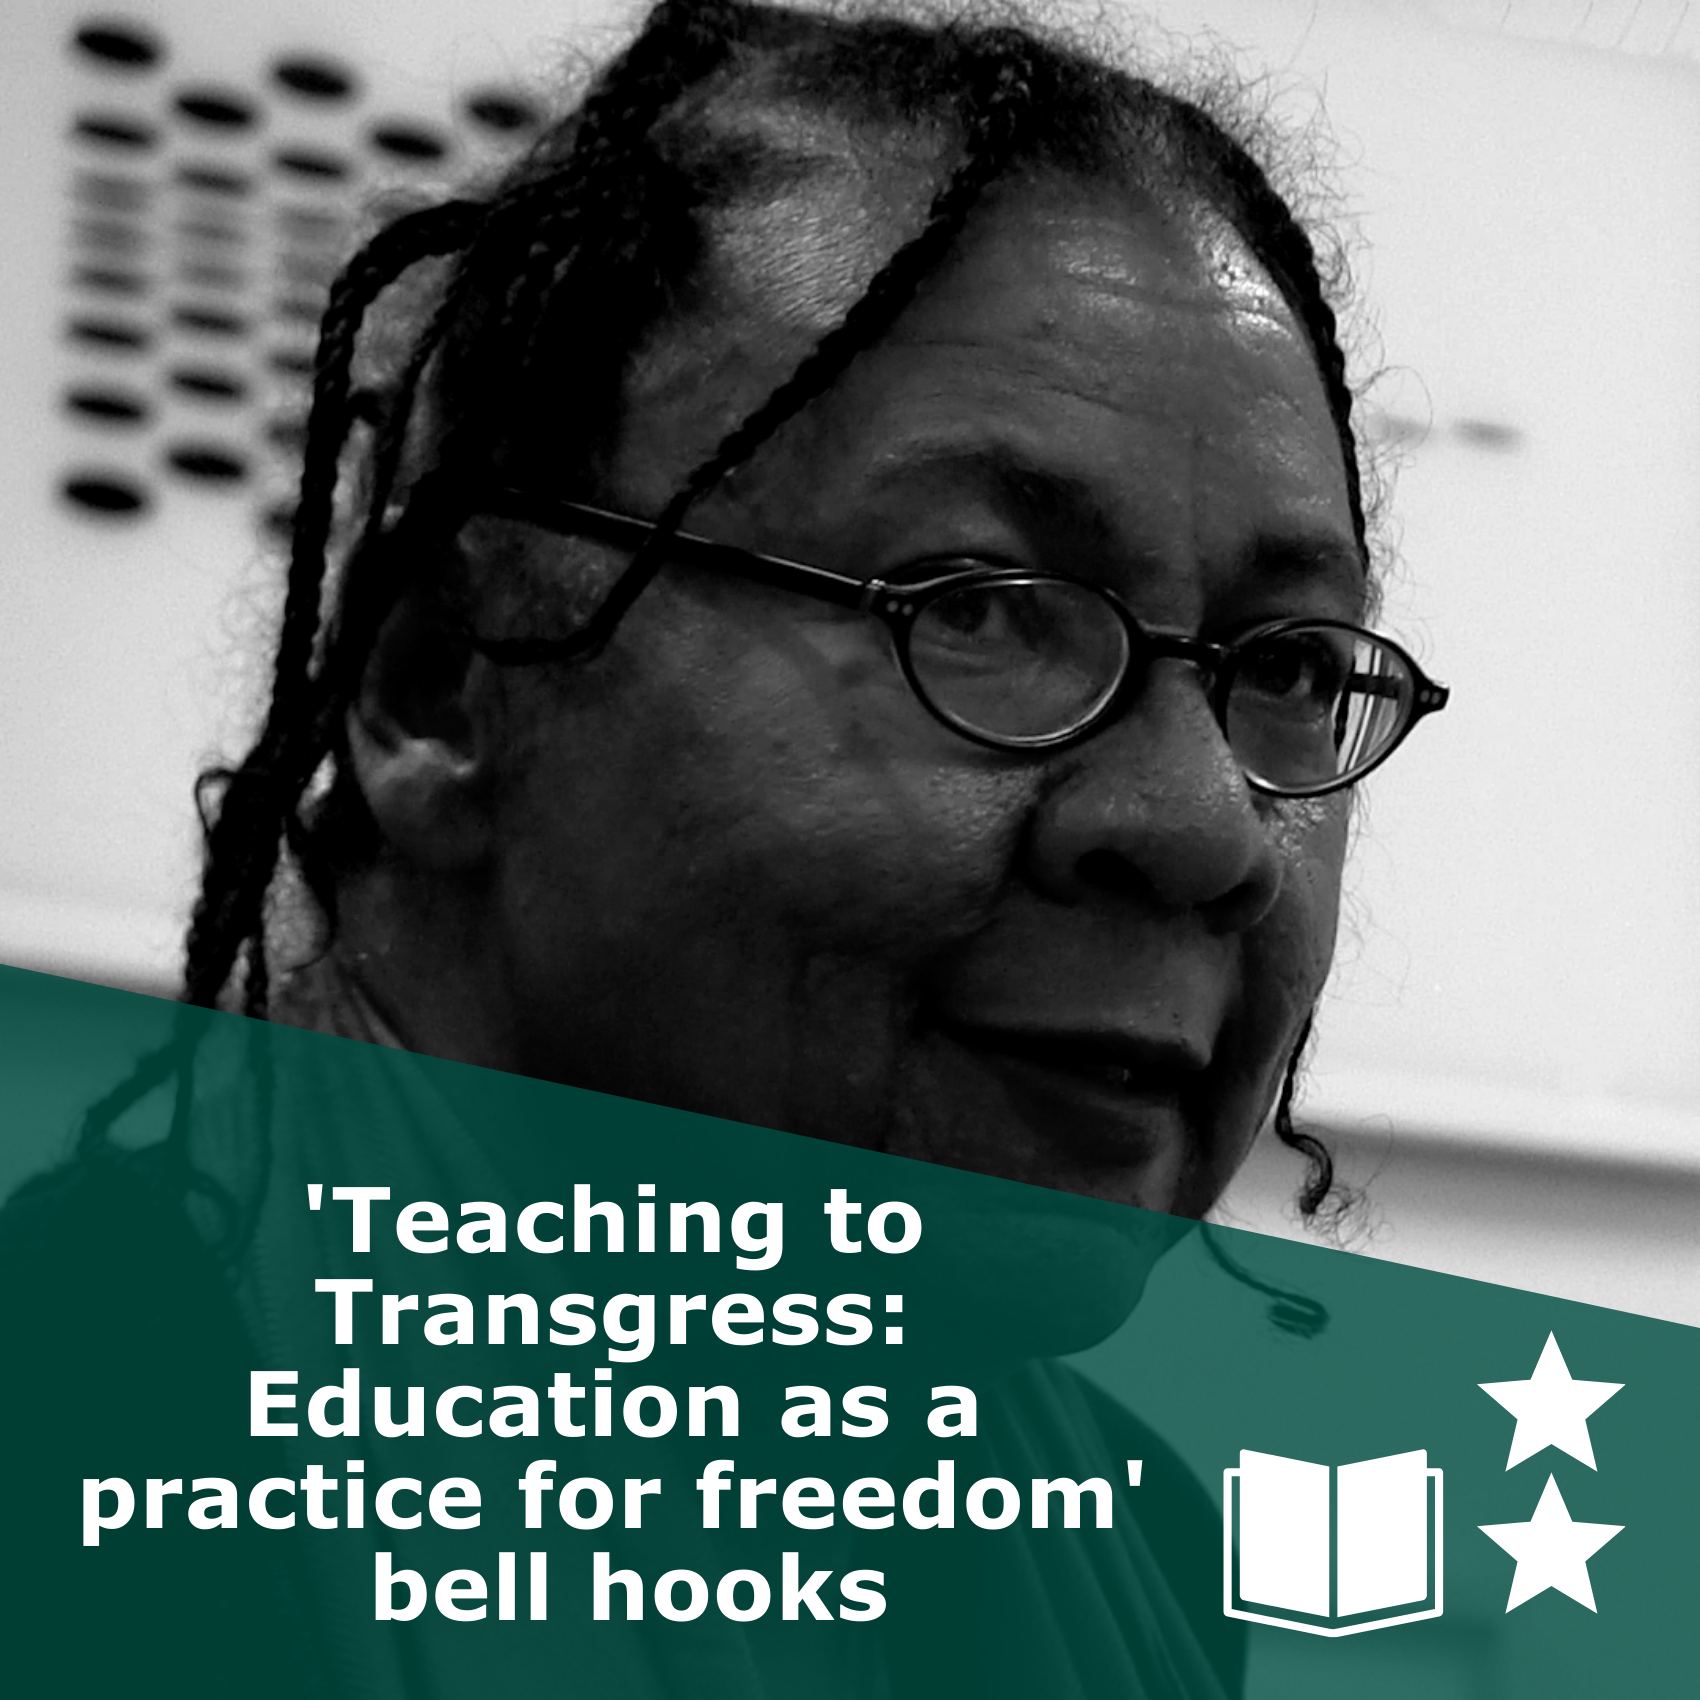 Picture of bell hooks in black and white. Title 'Teaching to Transgress: Education as a practice for freedom'. It is a book, rated two stars.